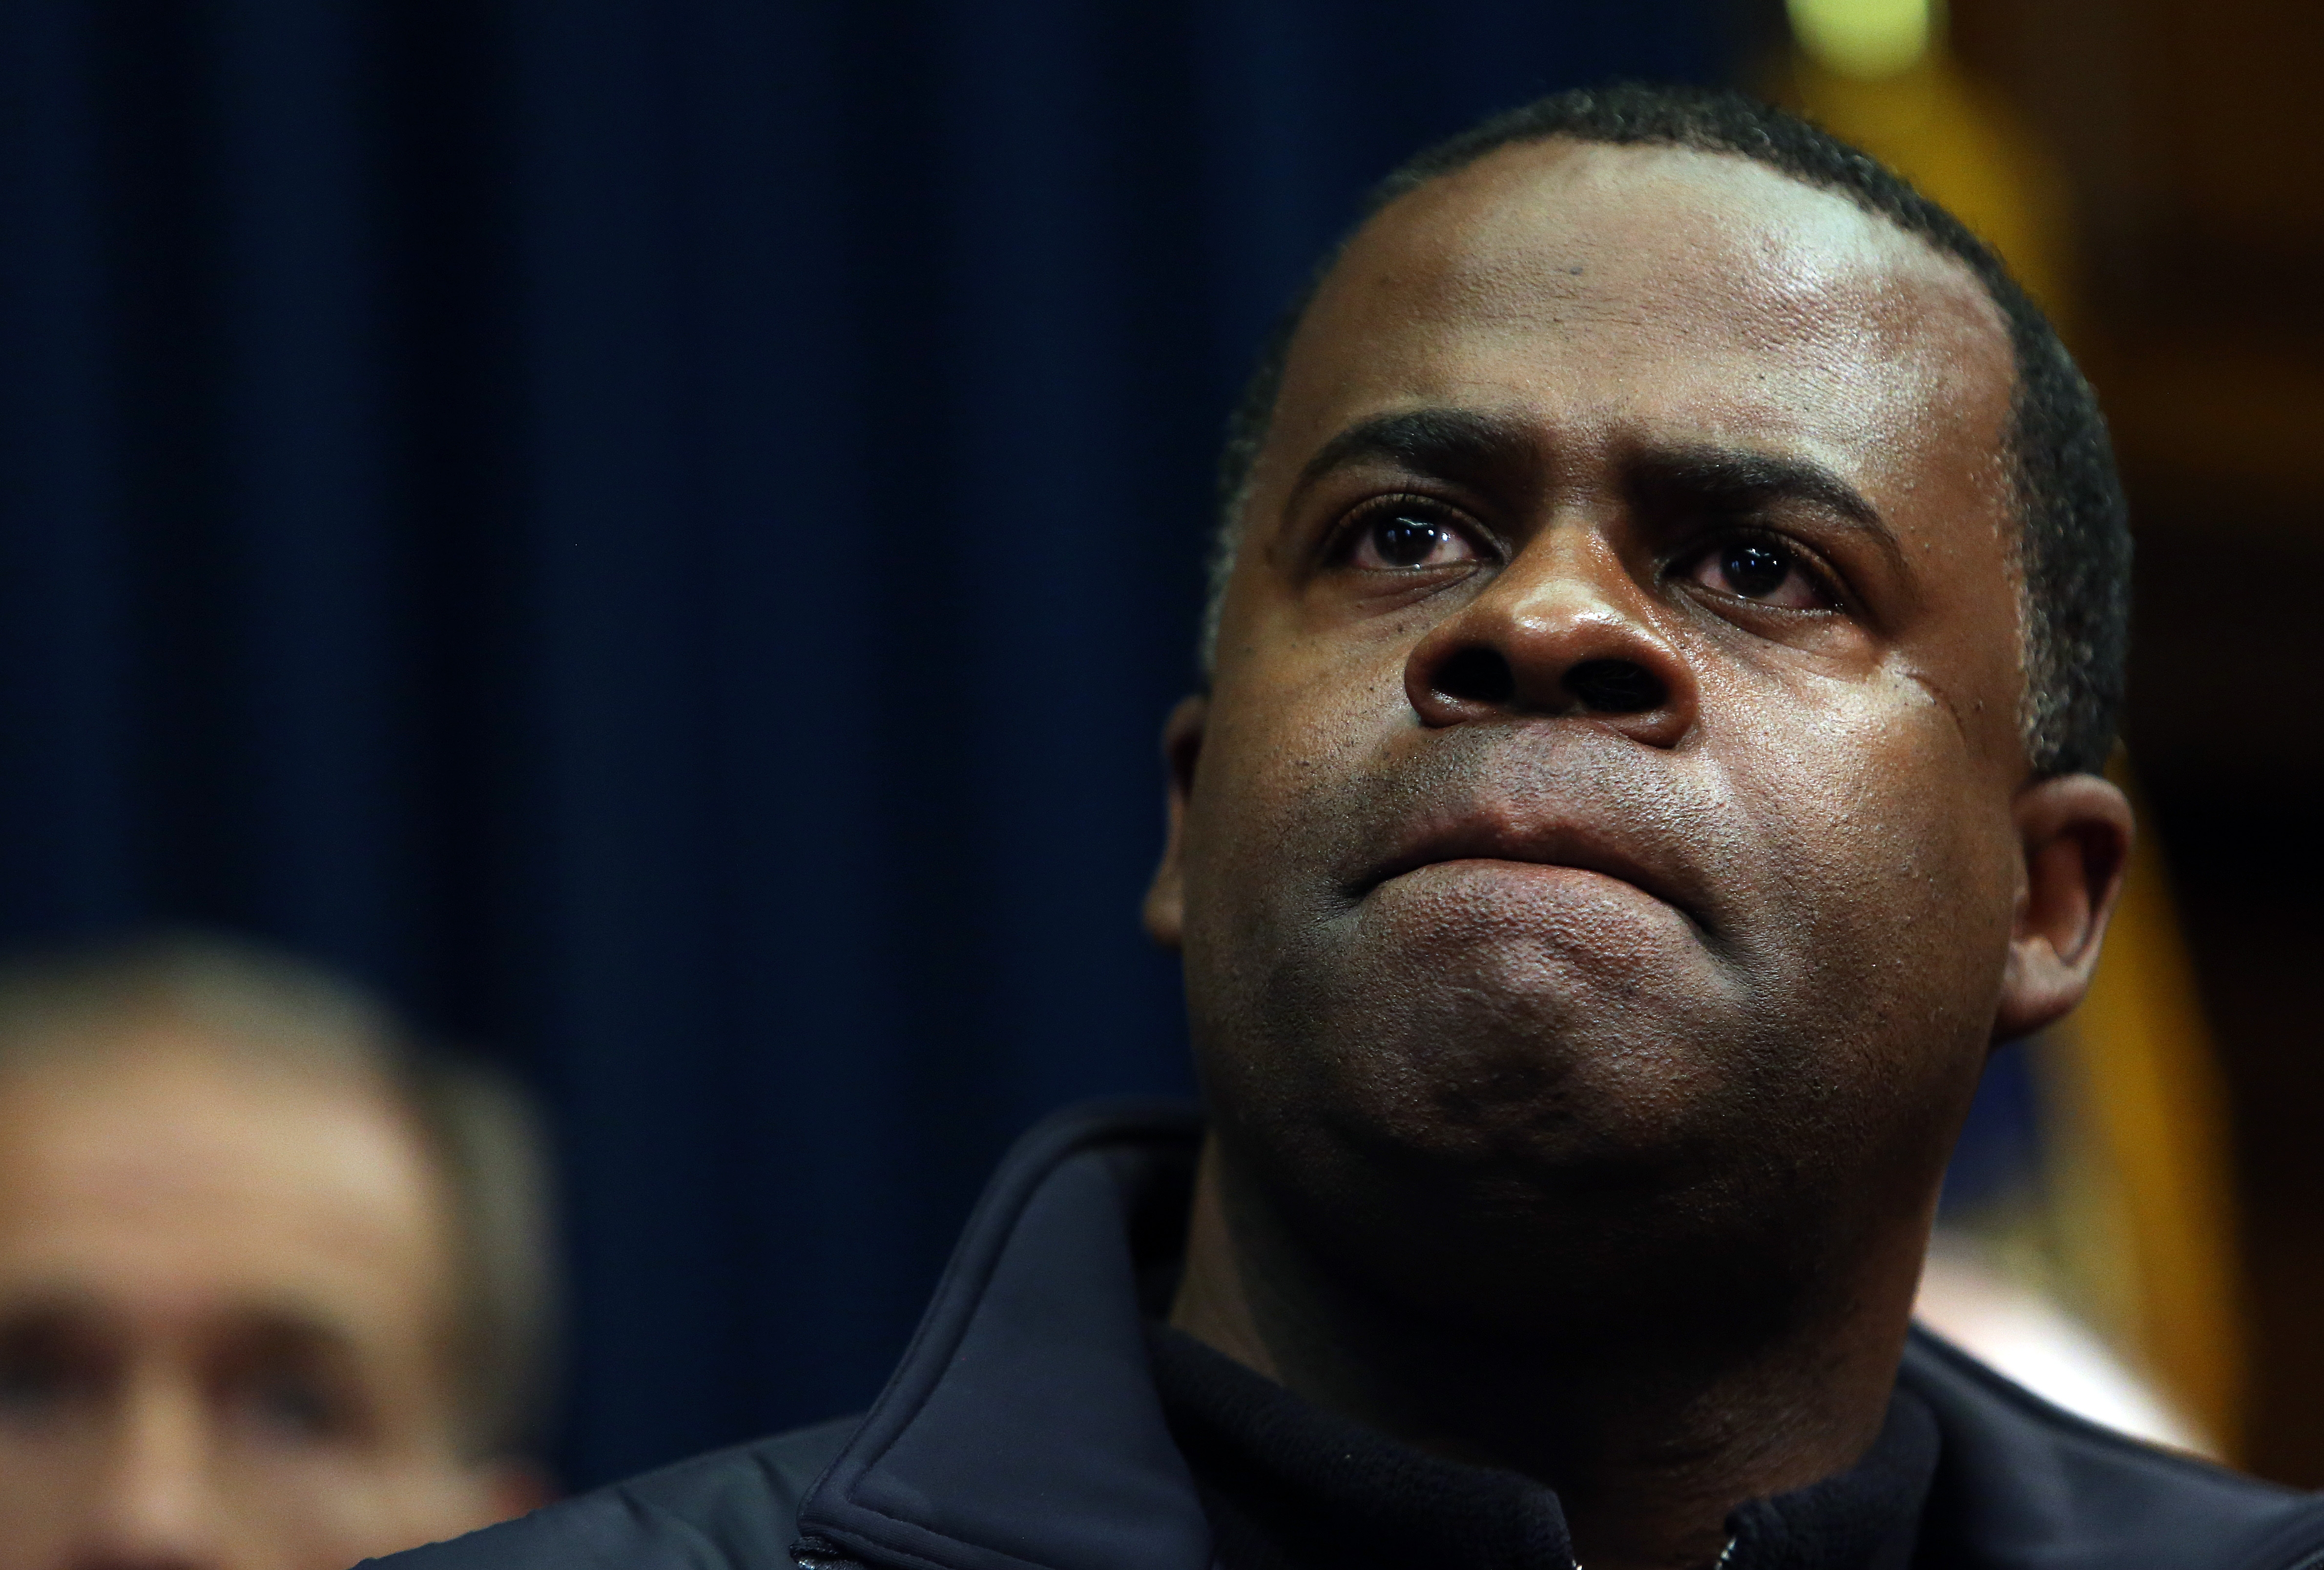 Atlanta Mayor Kasim Reed listens to a question about the city's response to the snow storm during a news conference Wednesday, Jan. 29, 2014 in the Governor's office at the State Capitol in Atlanta.